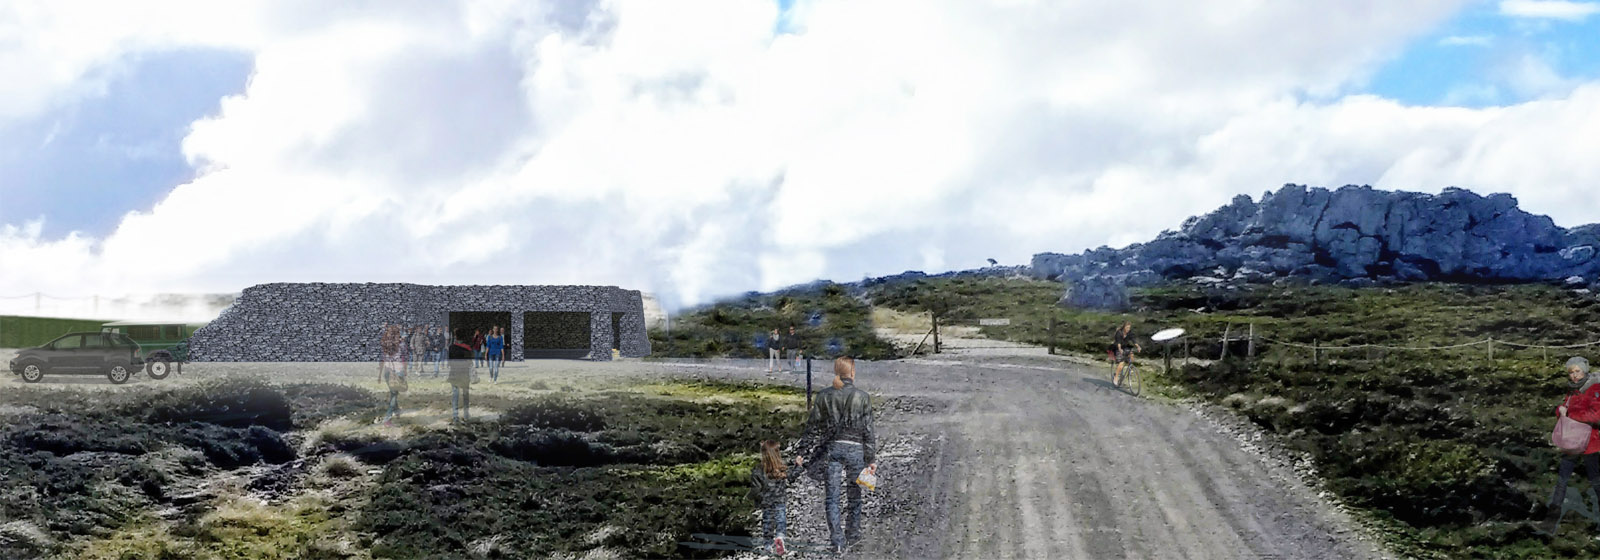 Tourist Shelter and Welfare Facilities - Gypsy Cove